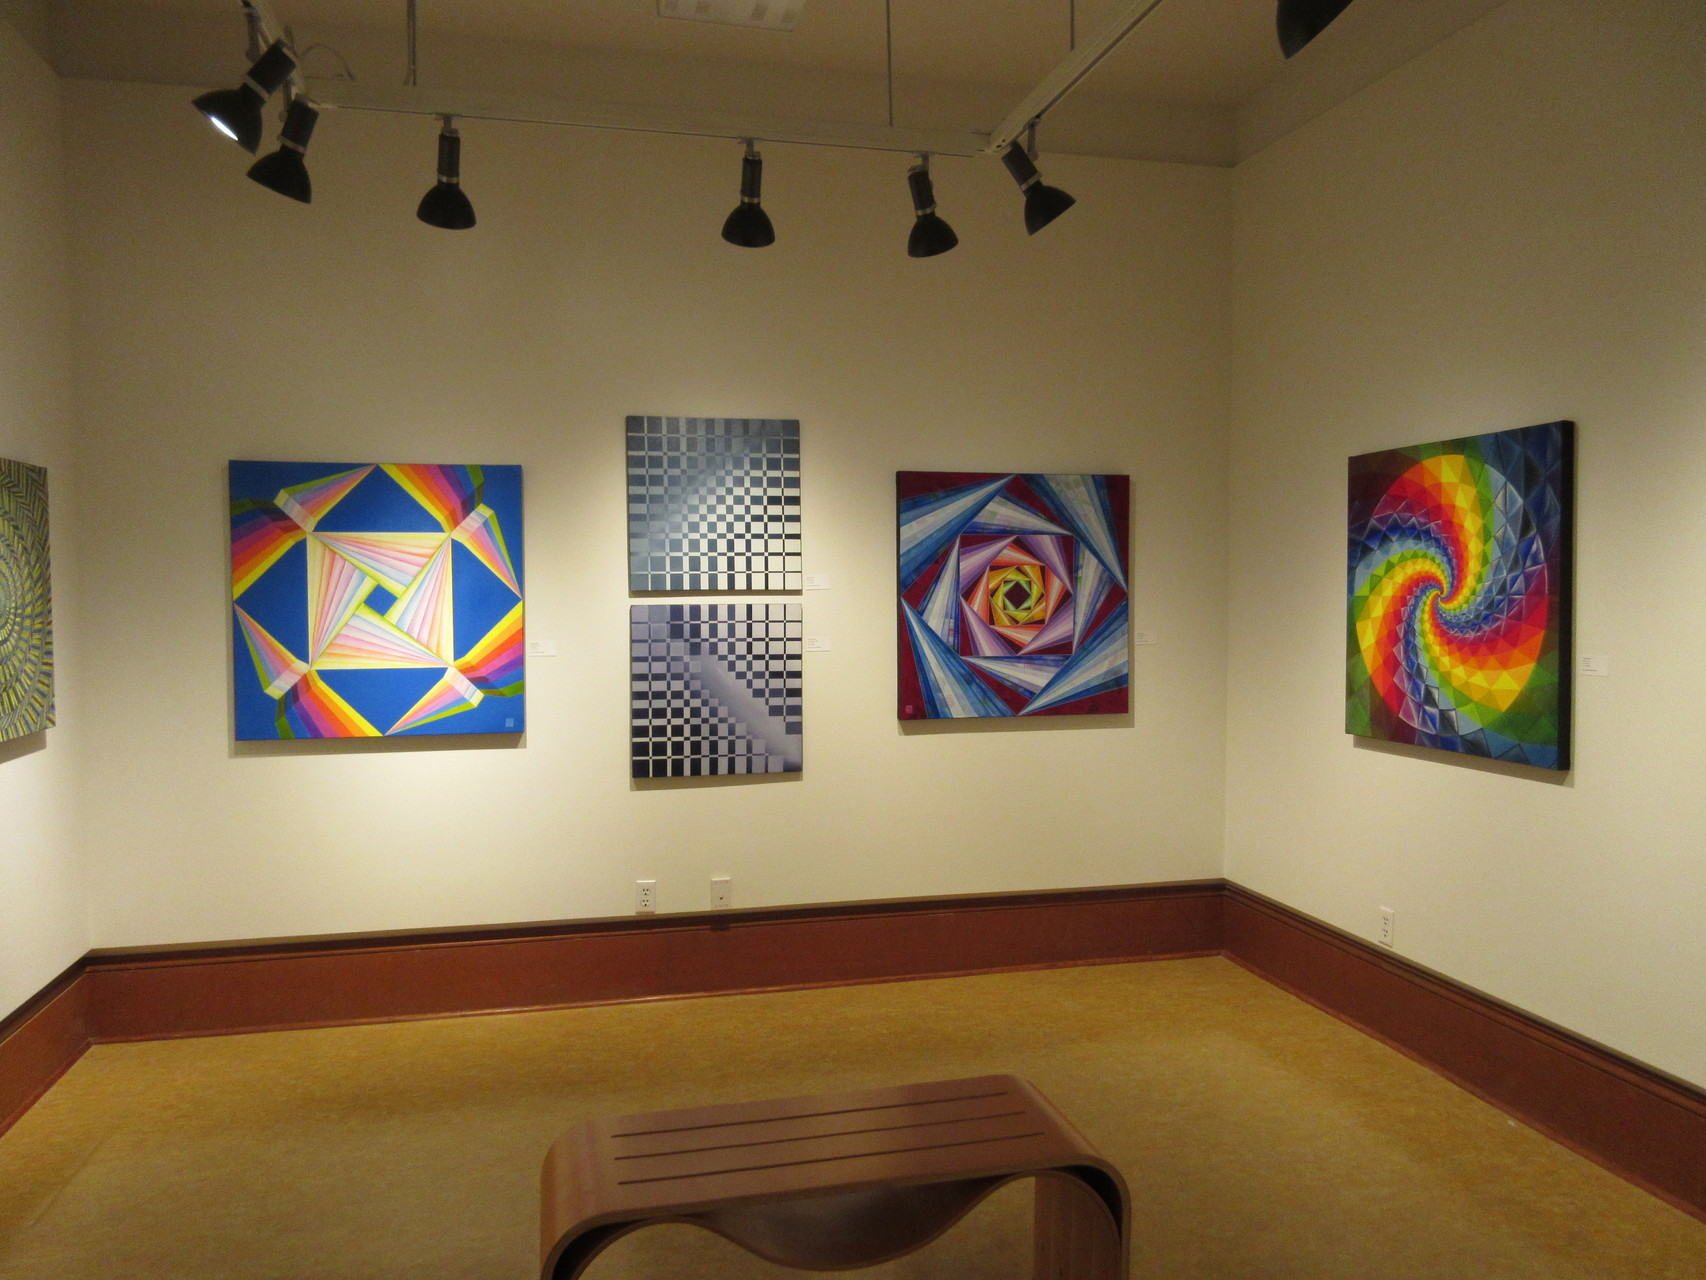 ...18 paintings in the West Gallery...